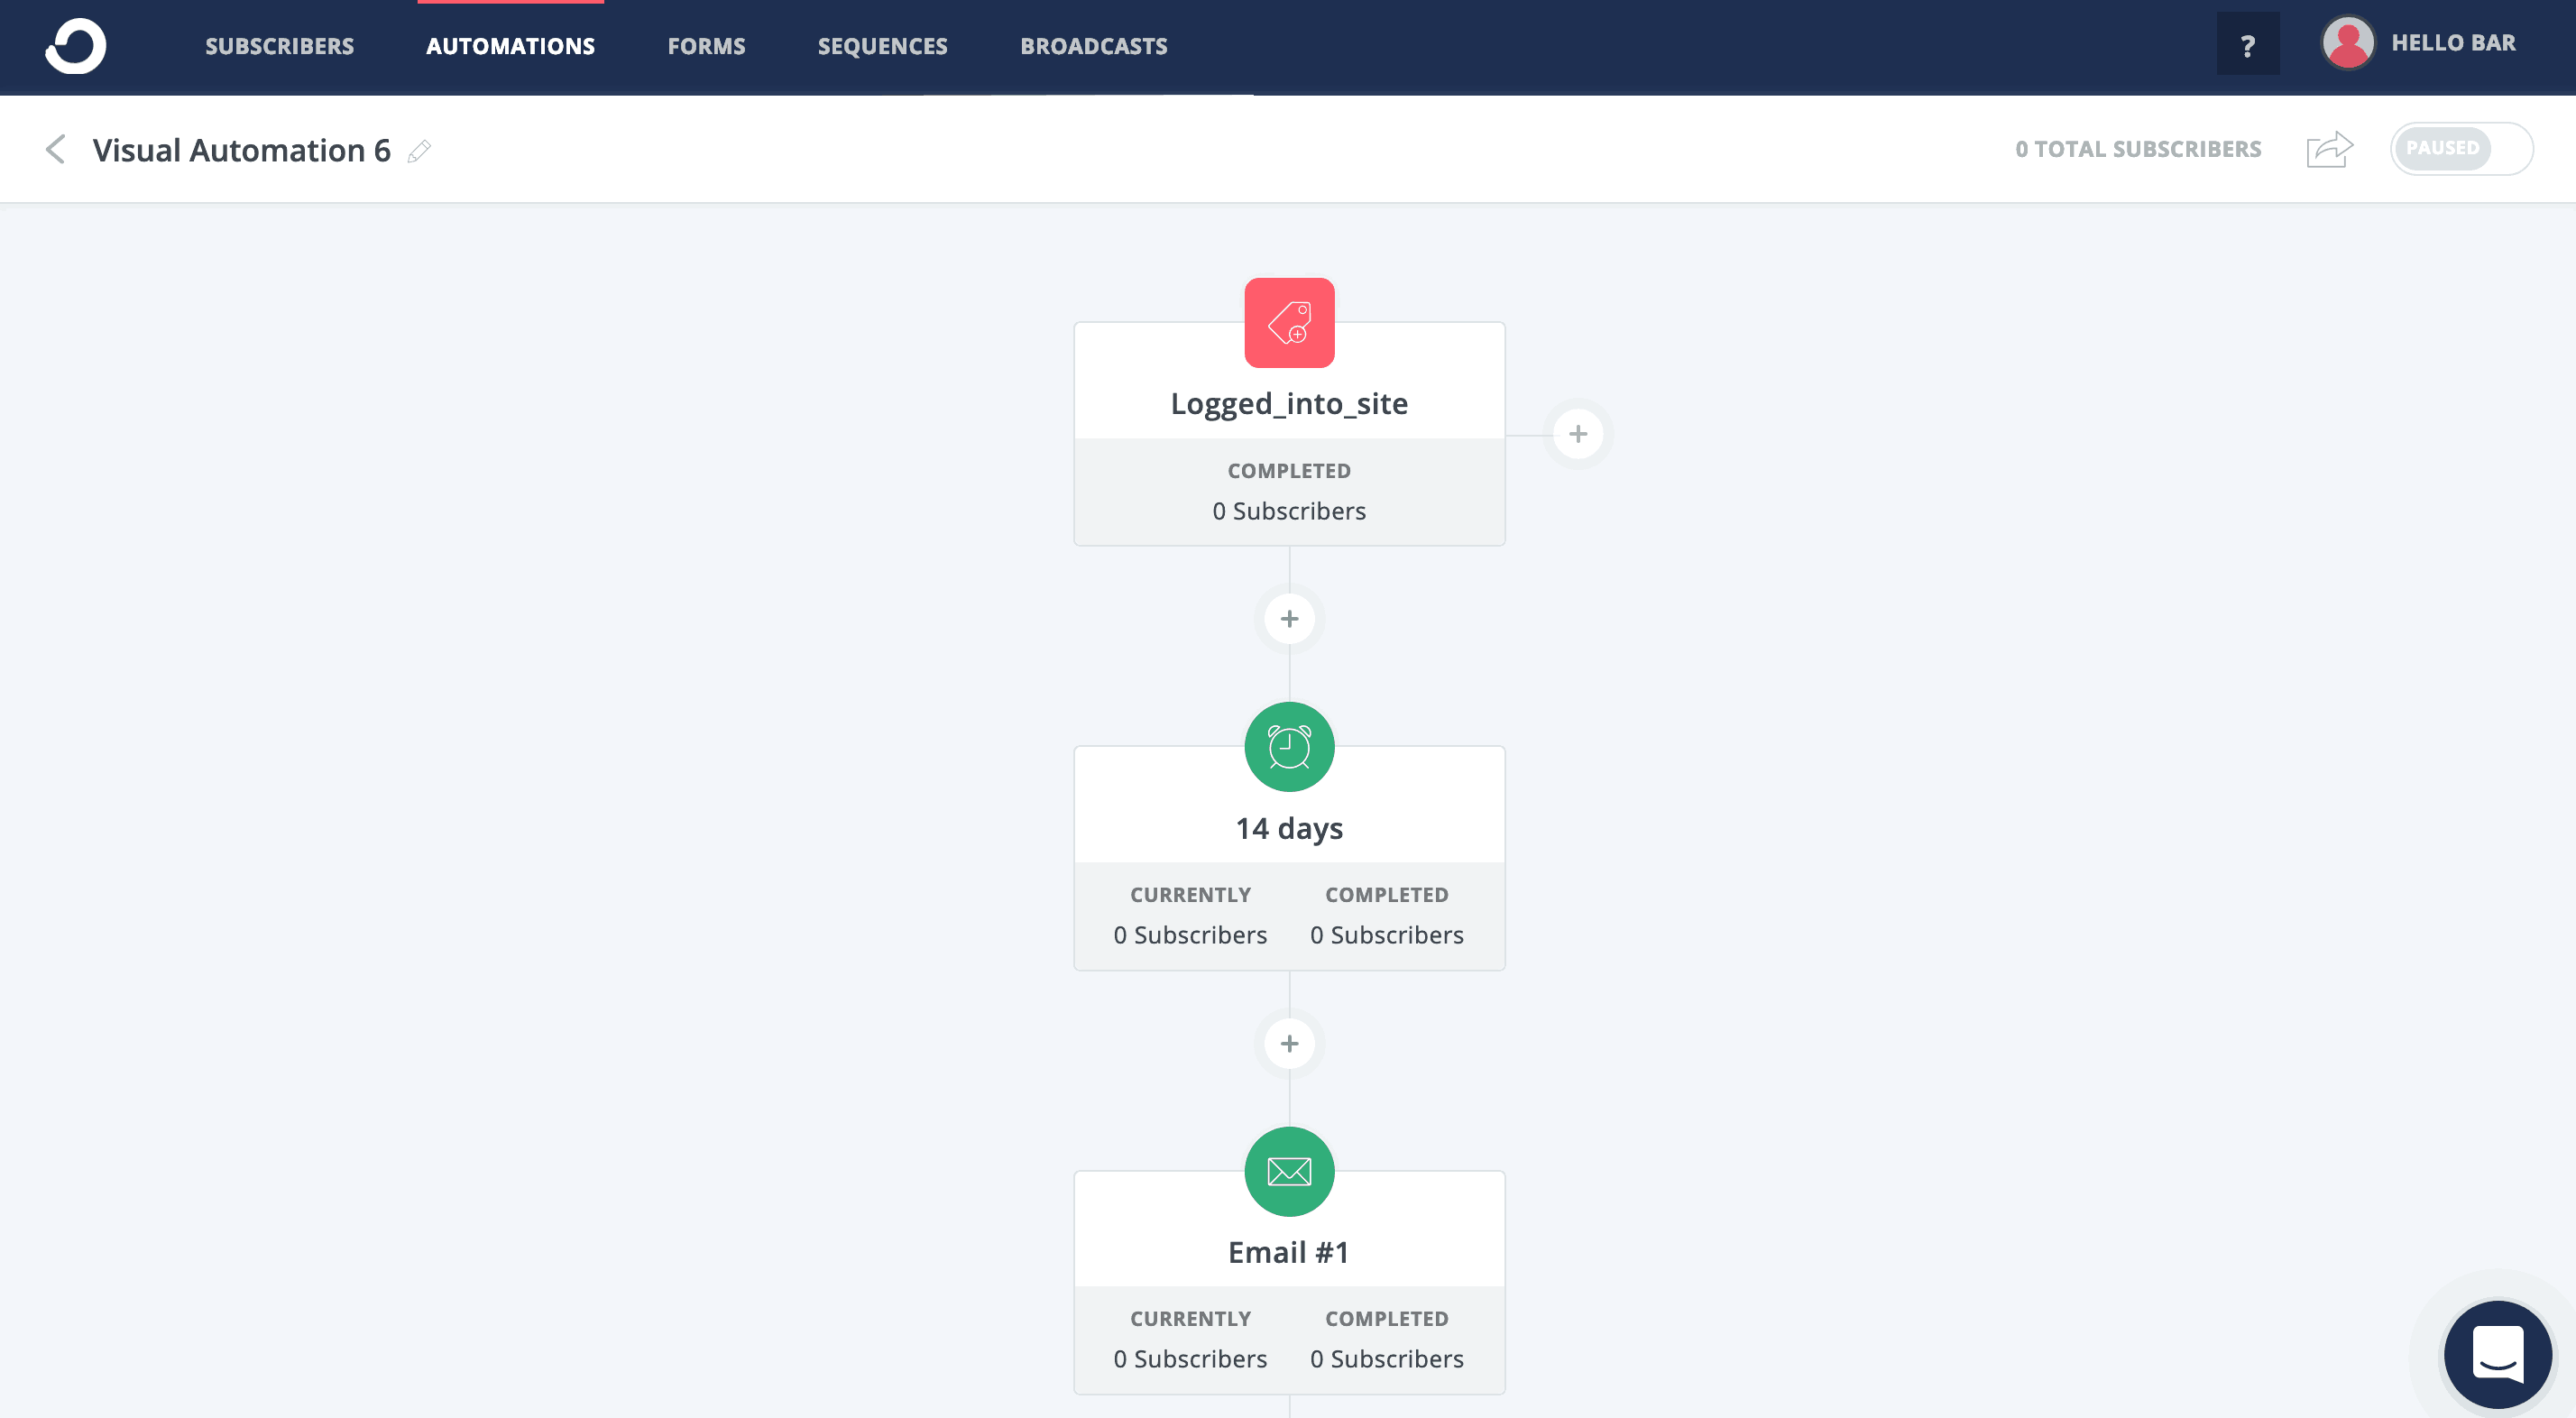 Visual Marketing Automation Example - Dripped Emails Via Timing Sequences Set to 14 Days